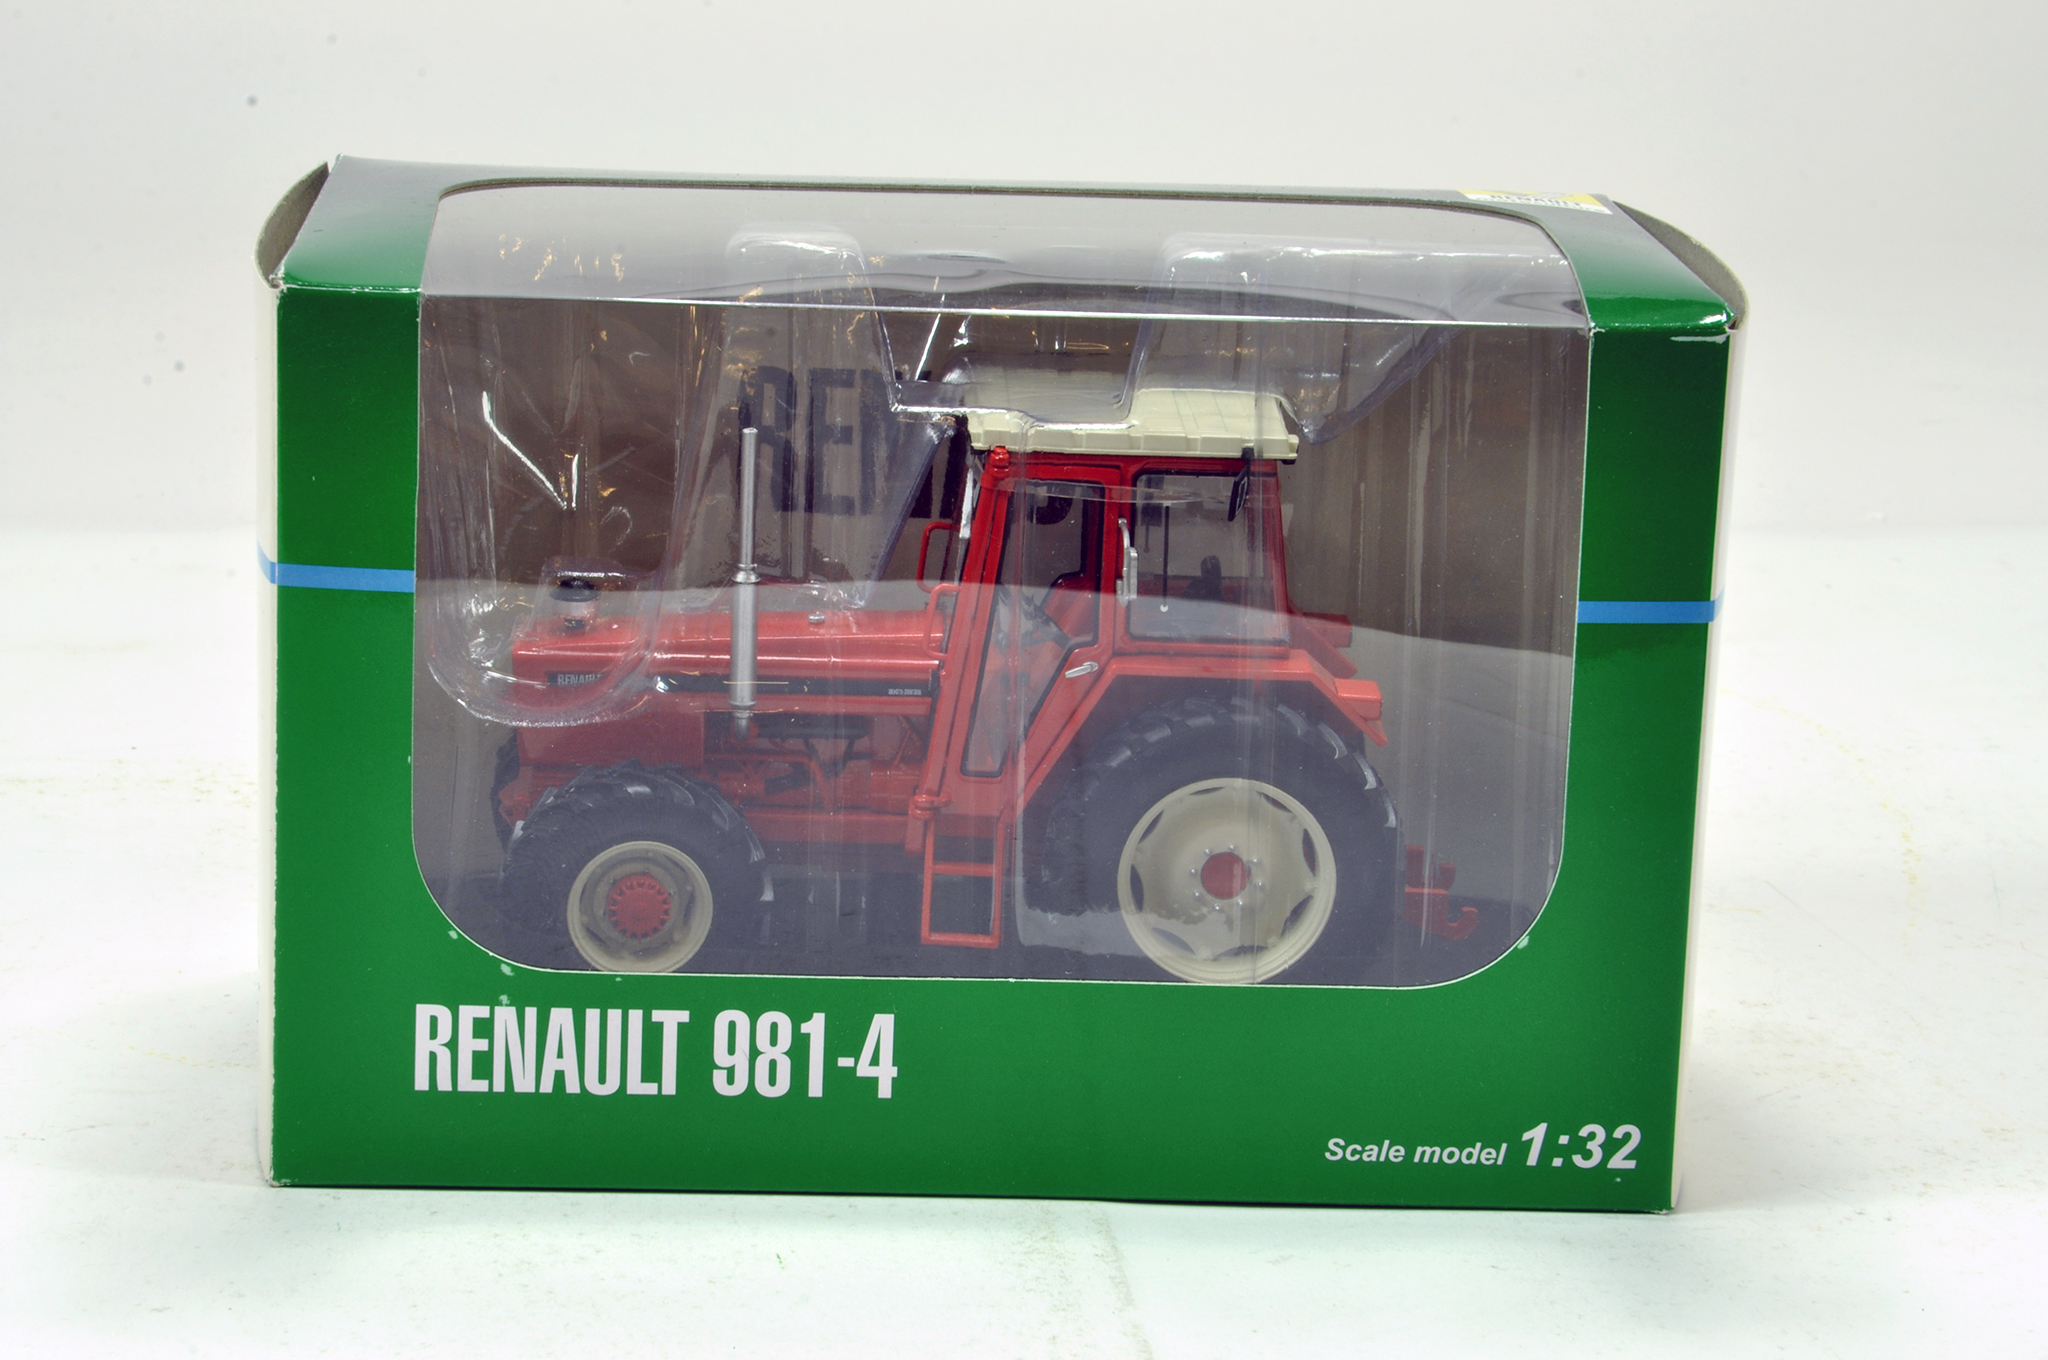 Lot 166 - Replicagri 1/32 Renault 981-4 4WD Tractor. Generally excellent in box.